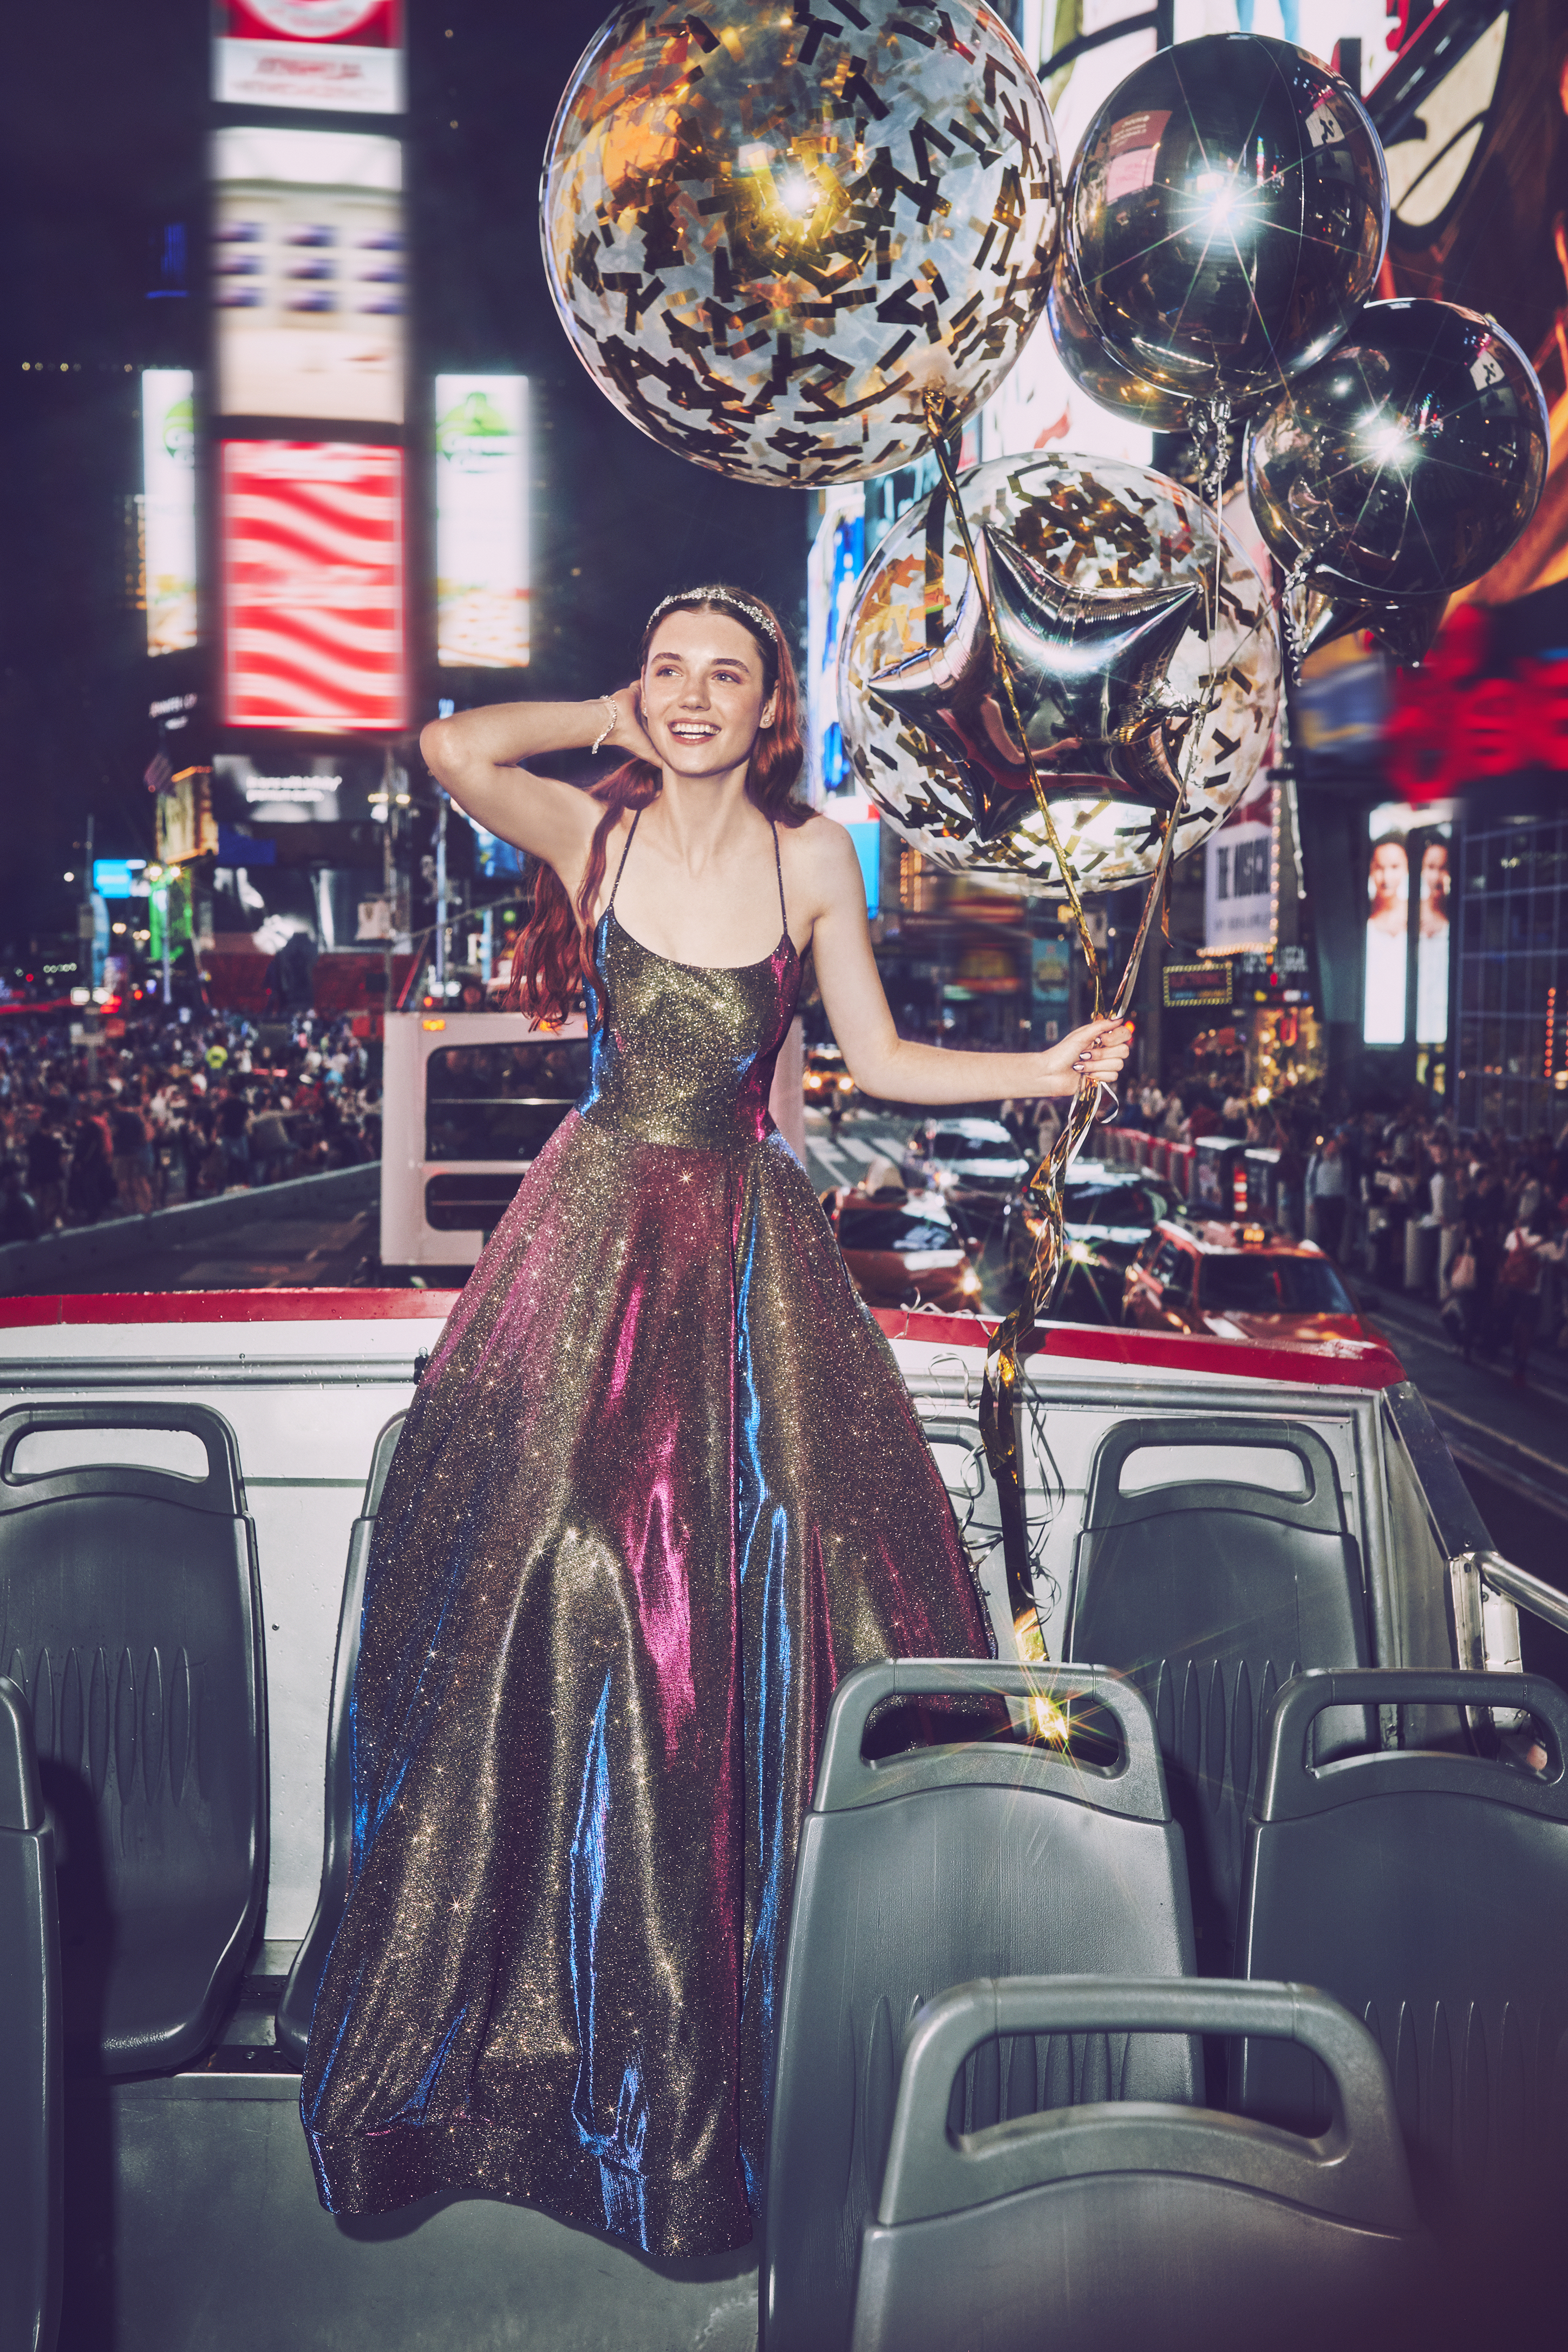 Girl in multicolored ball gown prom dress on a bus in Times Square New York holding balloons